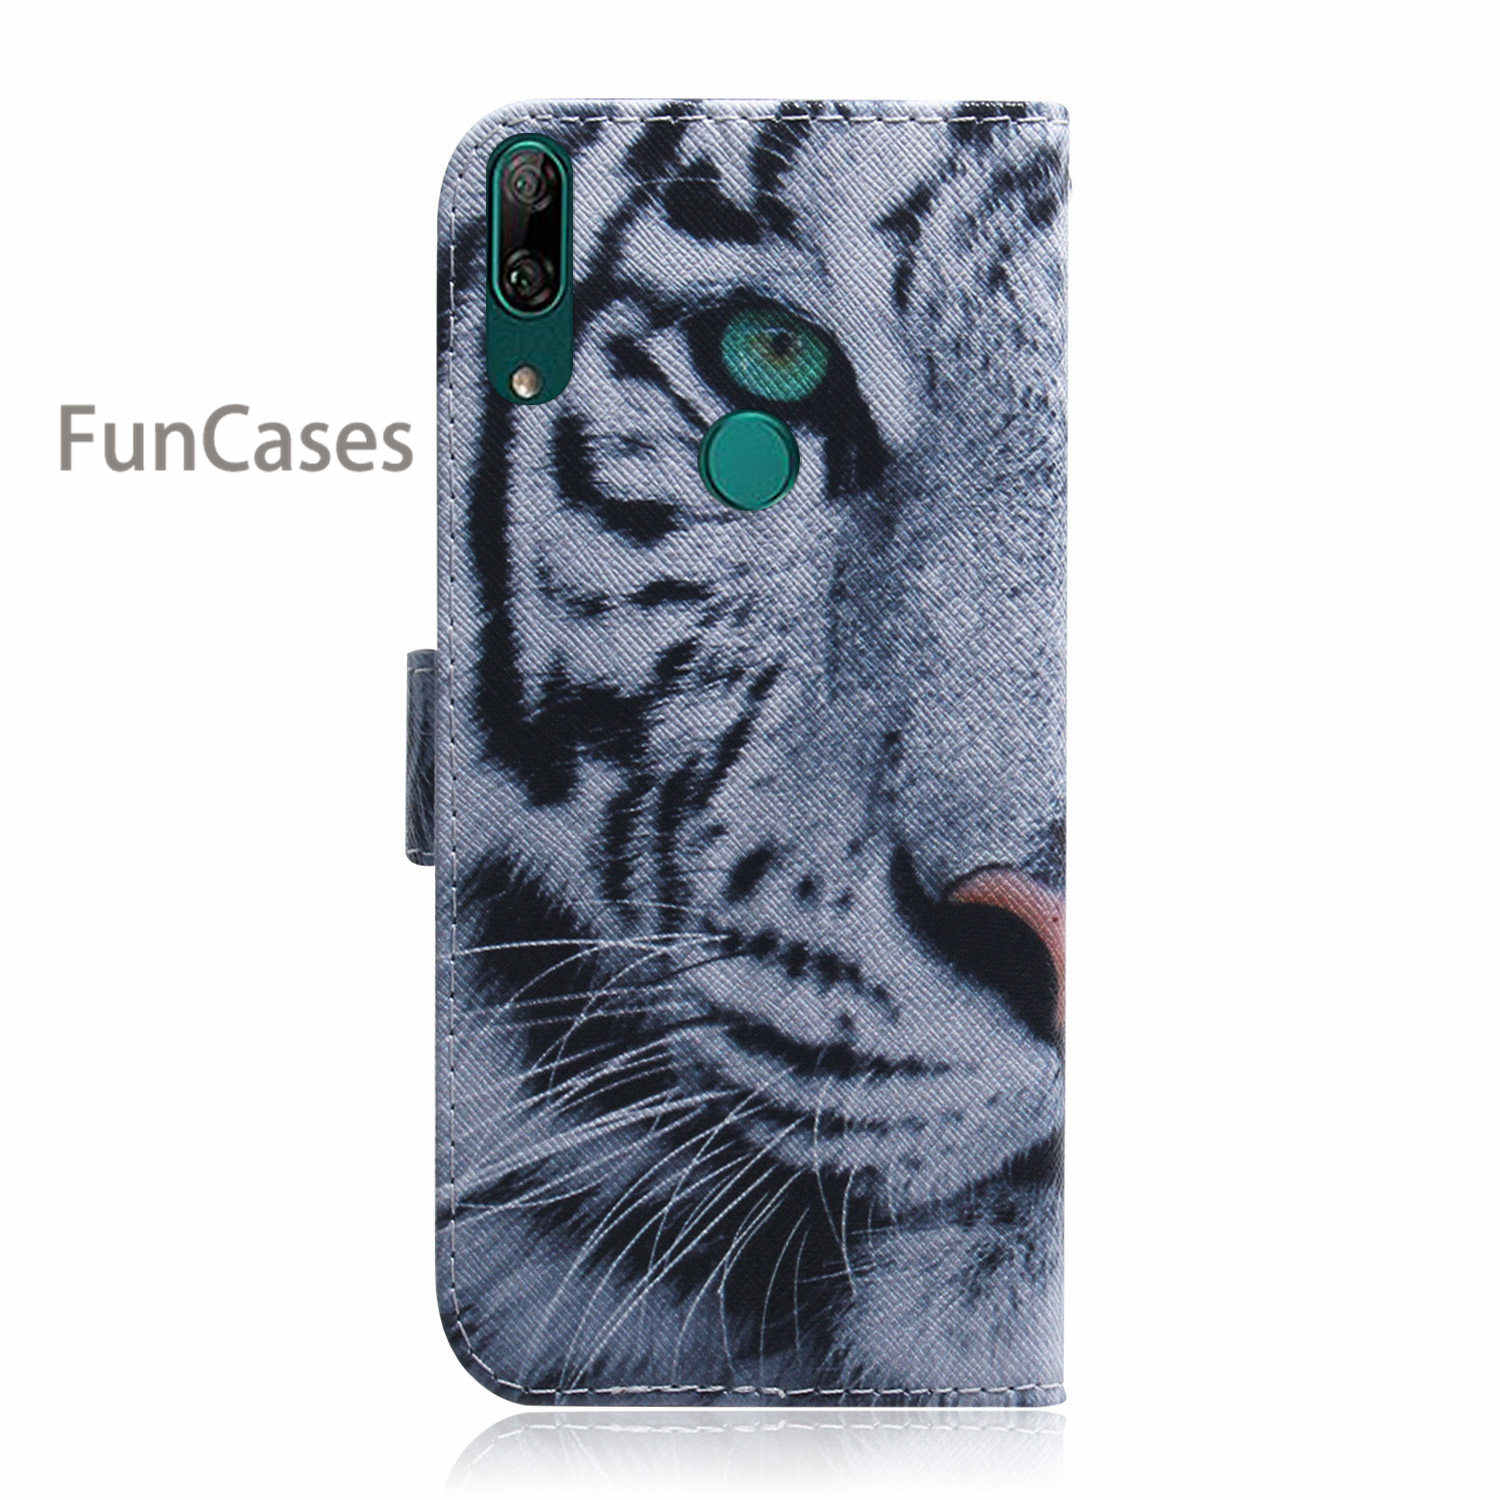 Lovely Smart Phone Covers For phone case Huawei Y9 Prime 2019 PU Leather Flip Case sFor Huawei telefoon P Smart Z Estojo Casa